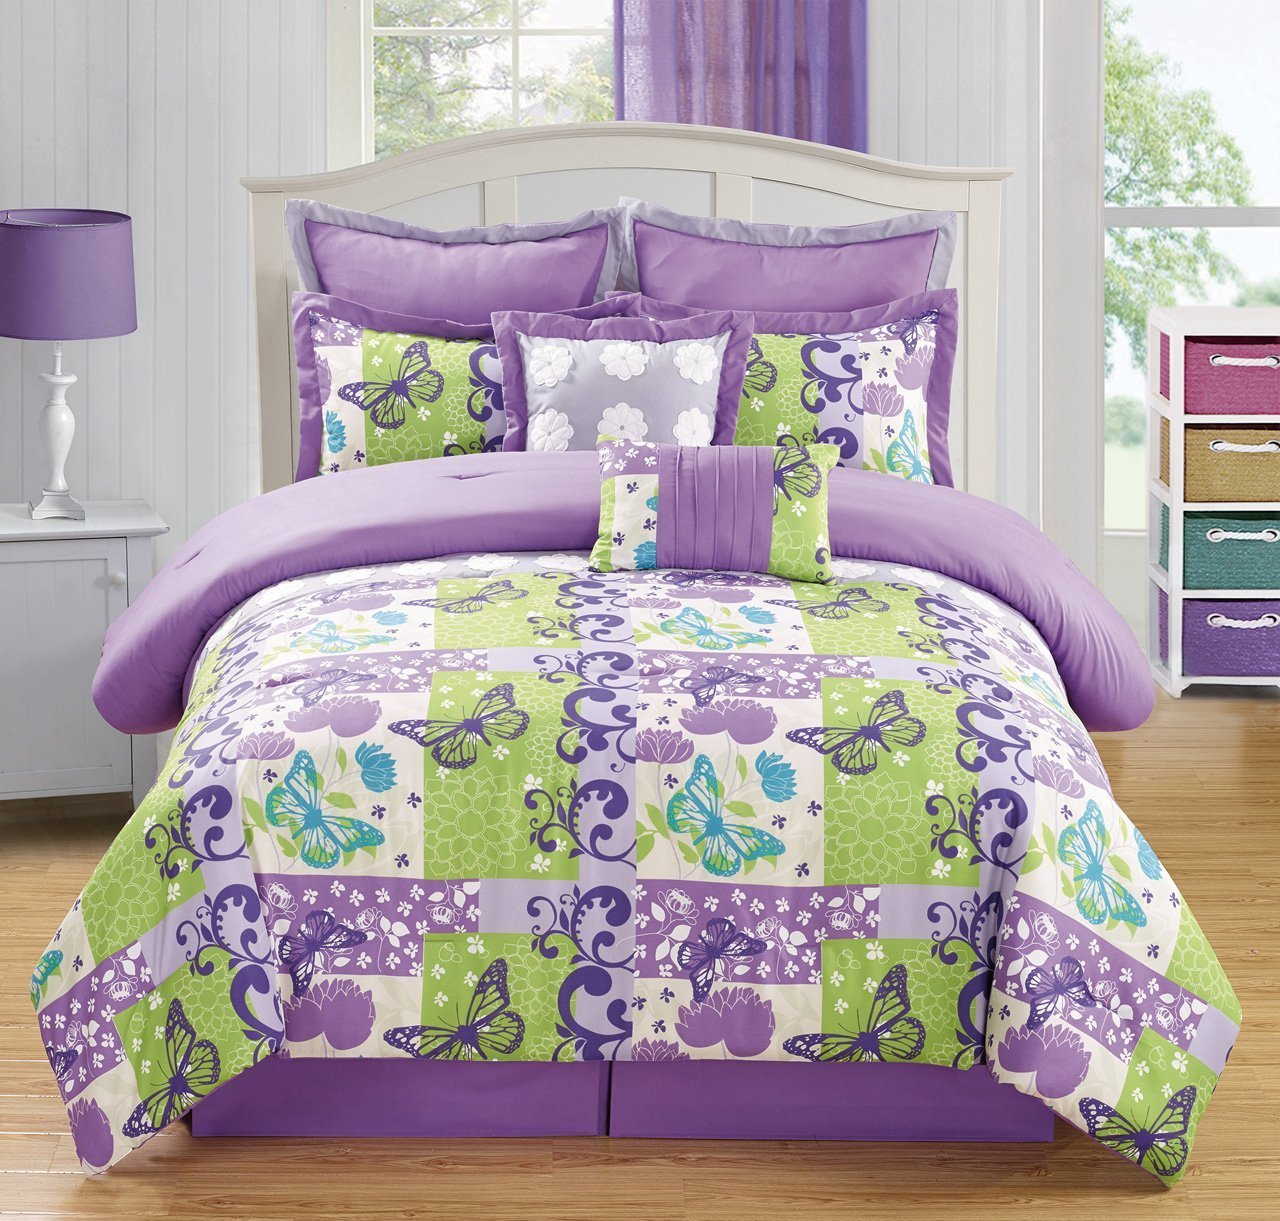 green and purple bedding sets. Black Bedroom Furniture Sets. Home Design Ideas